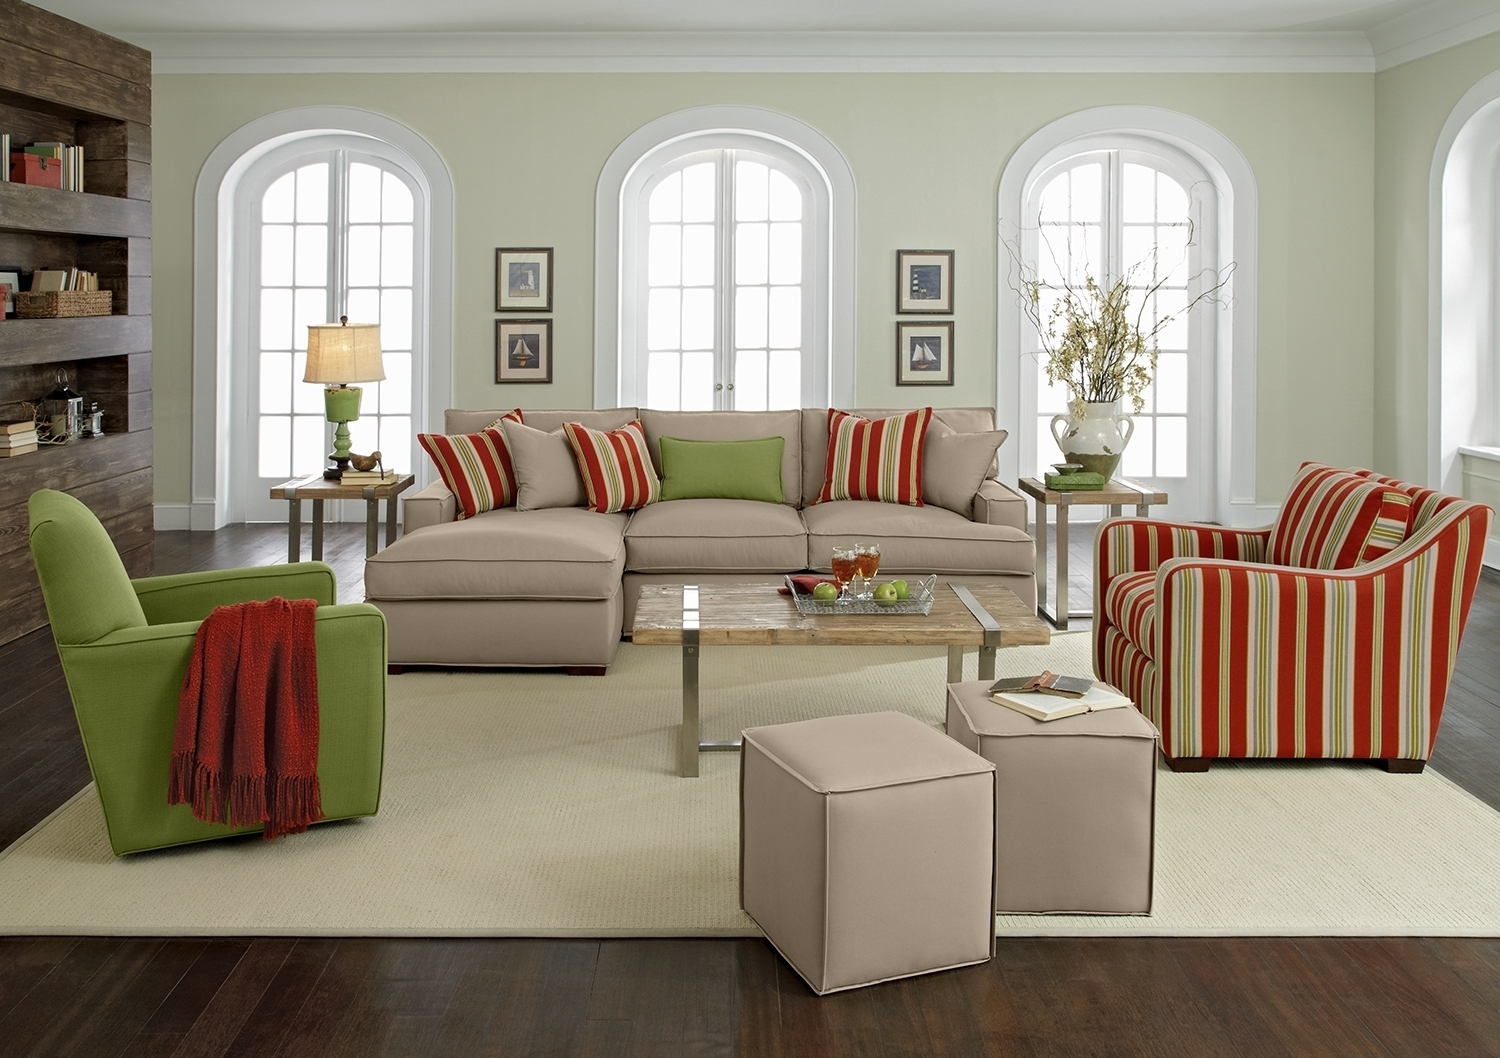 Striped Sofas And Chairs Throughout Latest Furniture: Modern White Couch And Sofa With Glass Top Coffee Table (View 18 of 20)